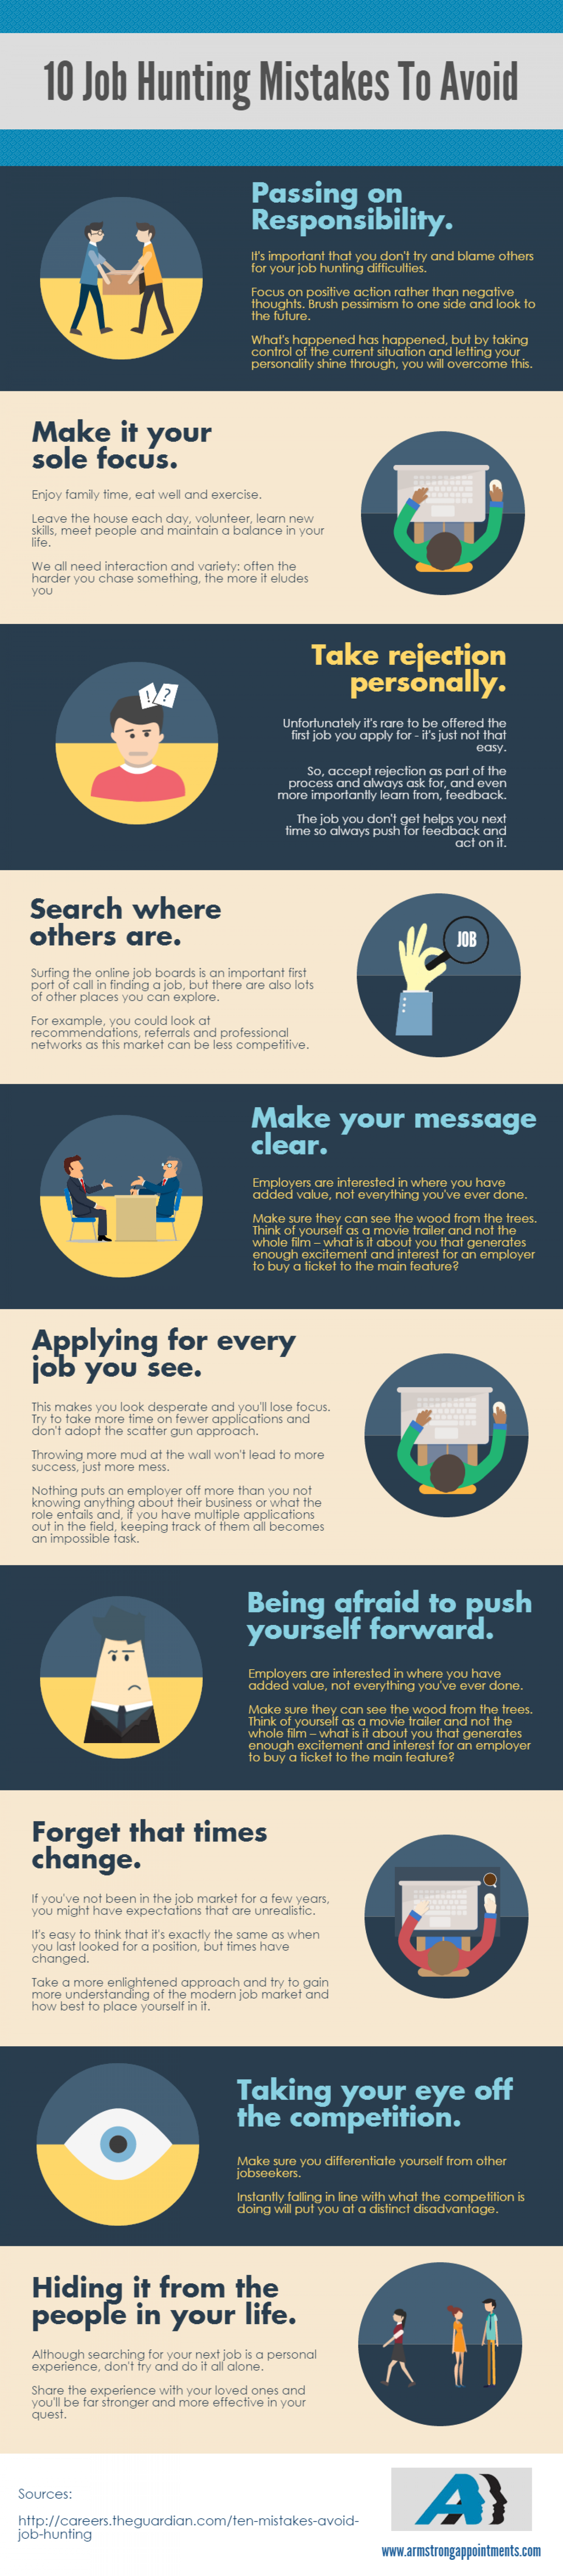 10 Job Hunting Mistakes To Avoid Infographic